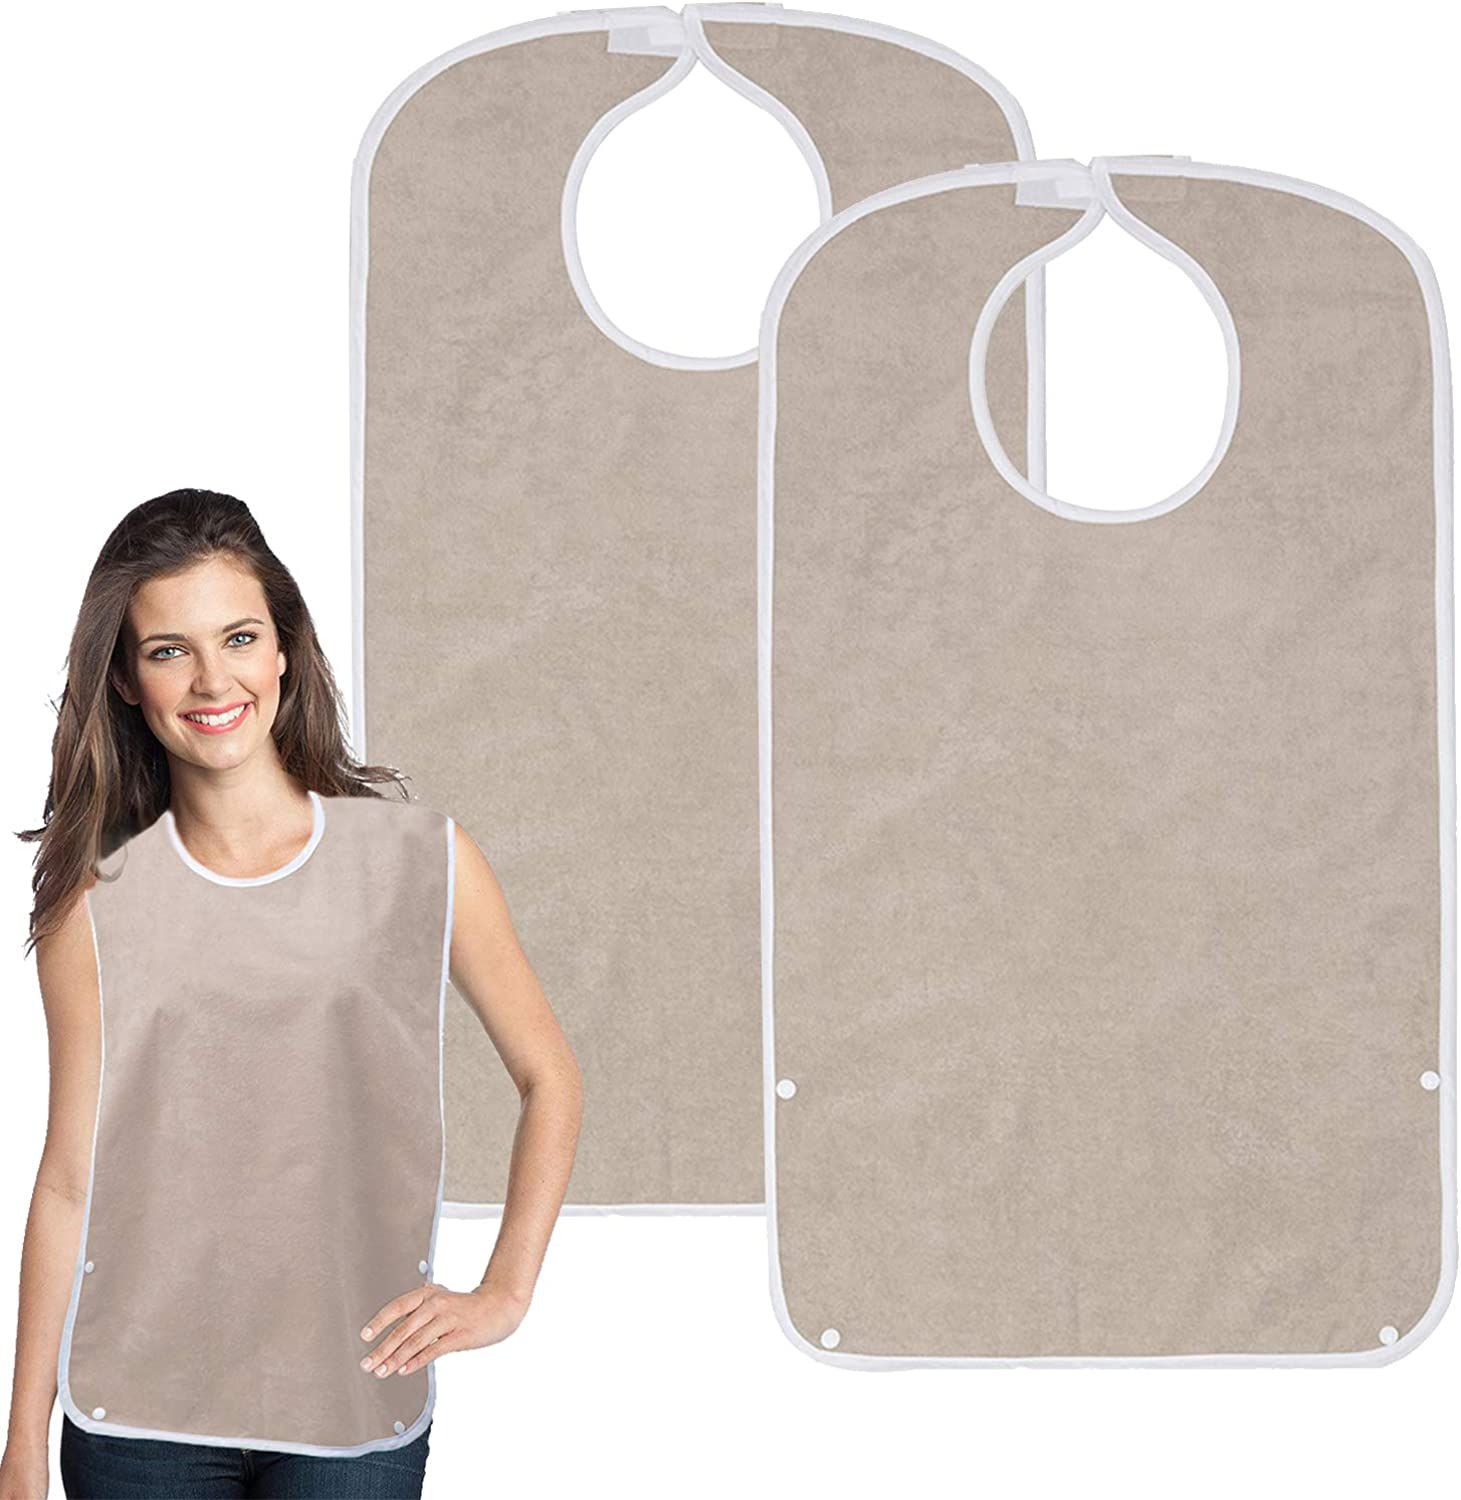 Adult Bib for Eating, Large Terry Clothing Protector with Optional Crumb Catcher